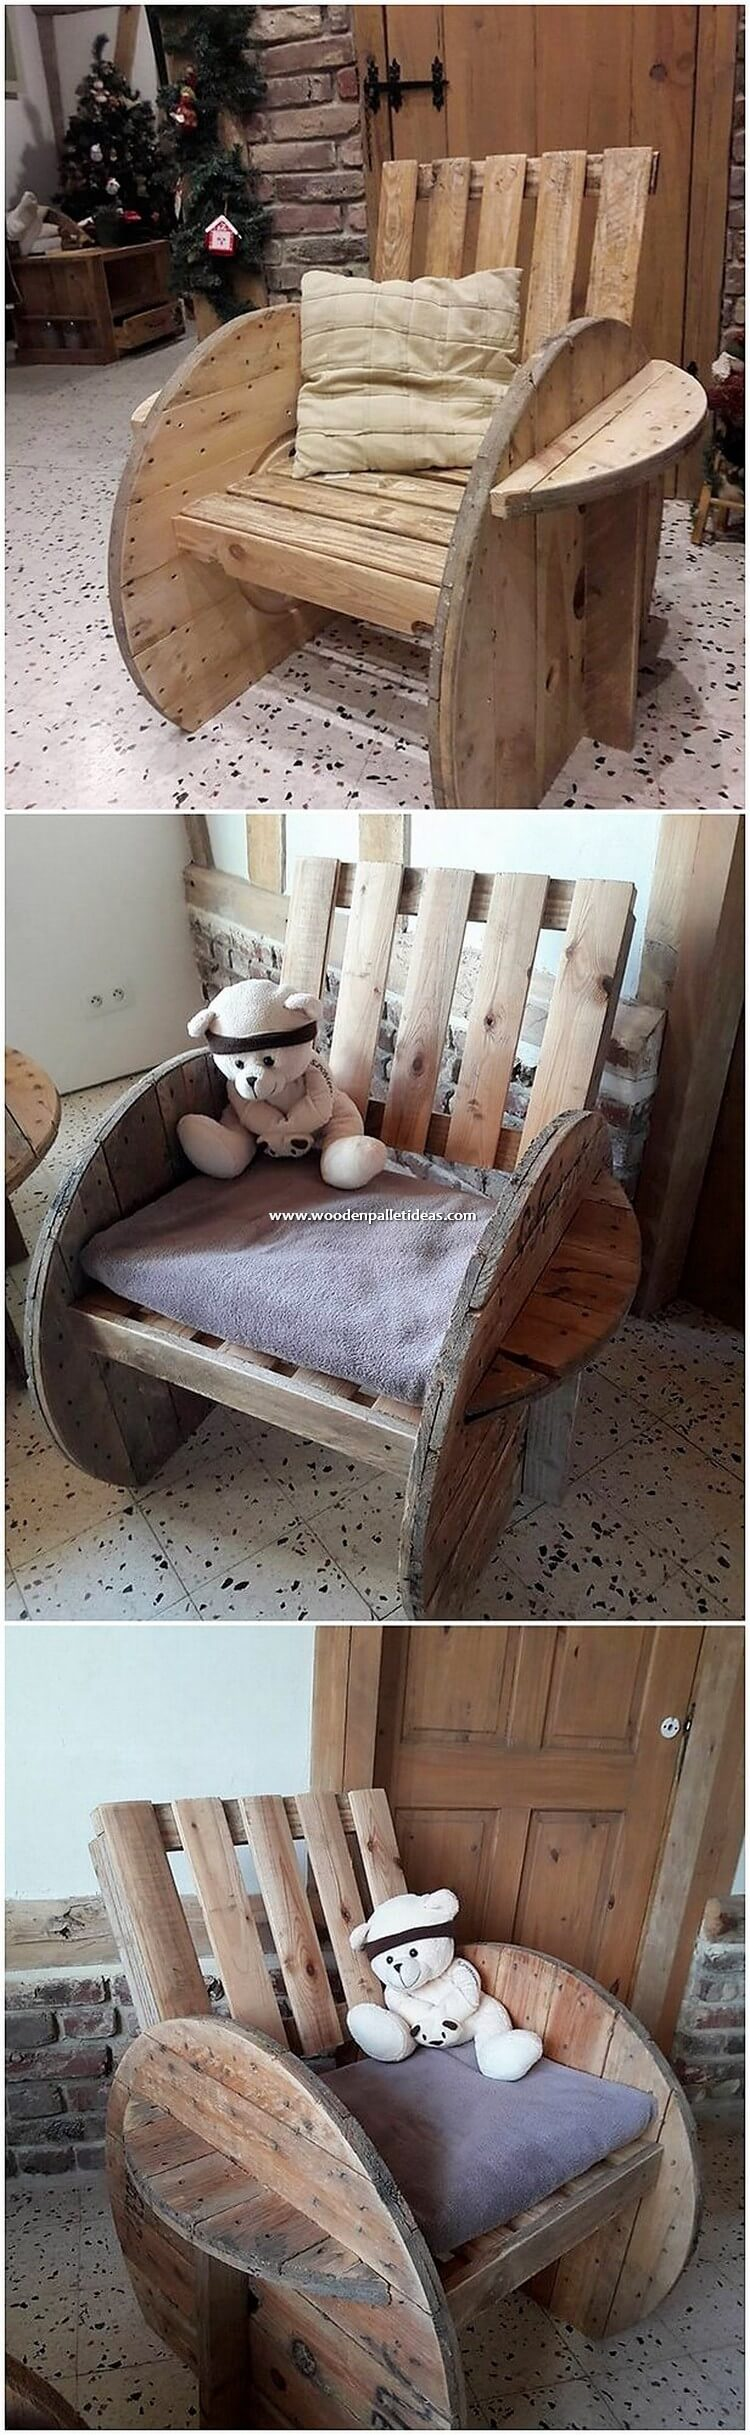 Pallet Chair for Kids